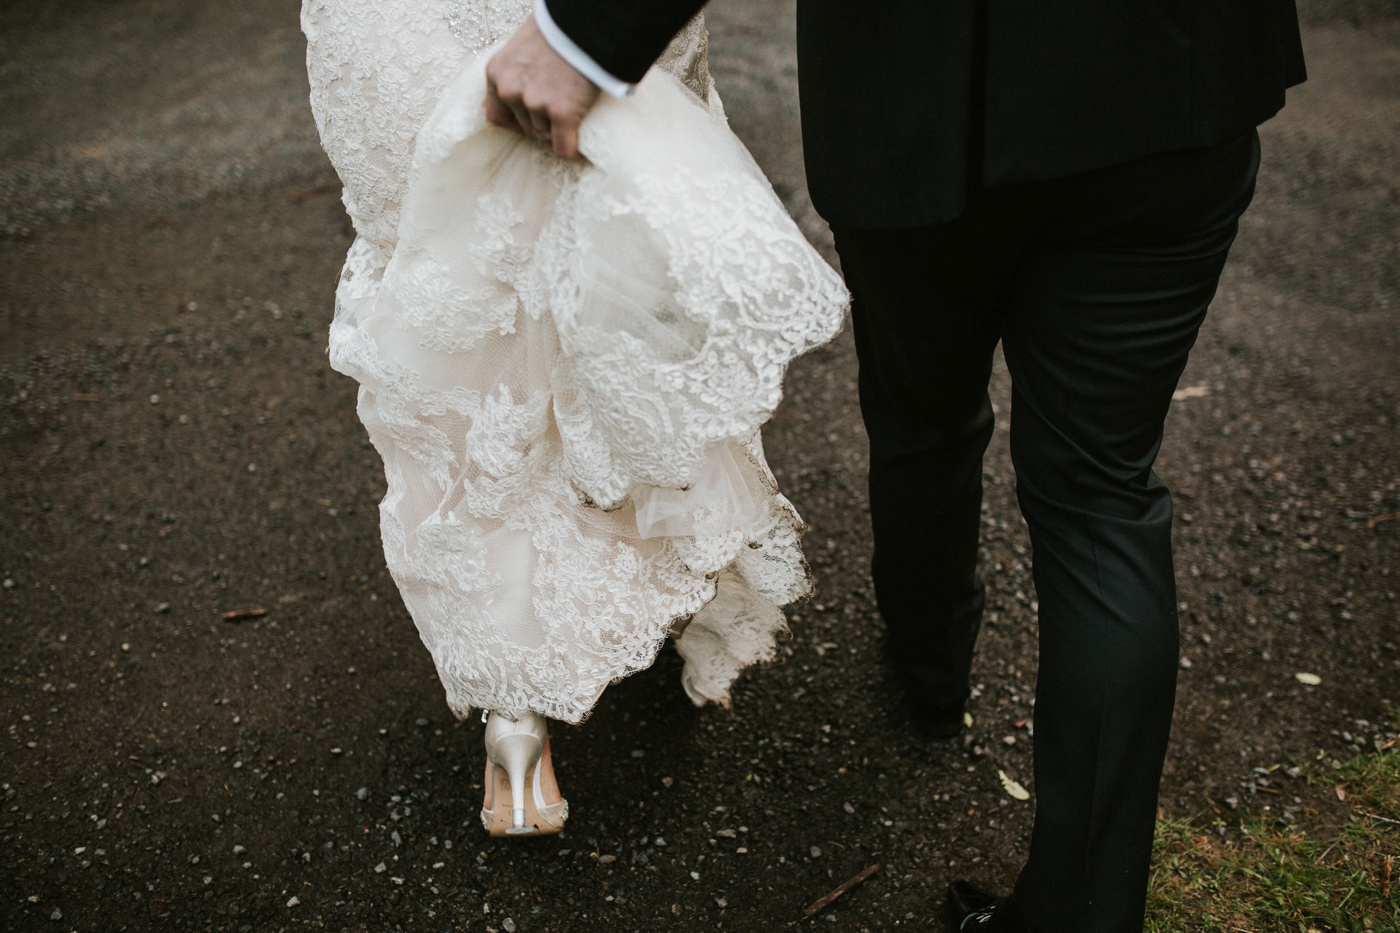 wesleybianca_dandenongs-sherbrooke-poets-lane-wedding_melbourne-quirky-fun-candid-wedding-photography_54